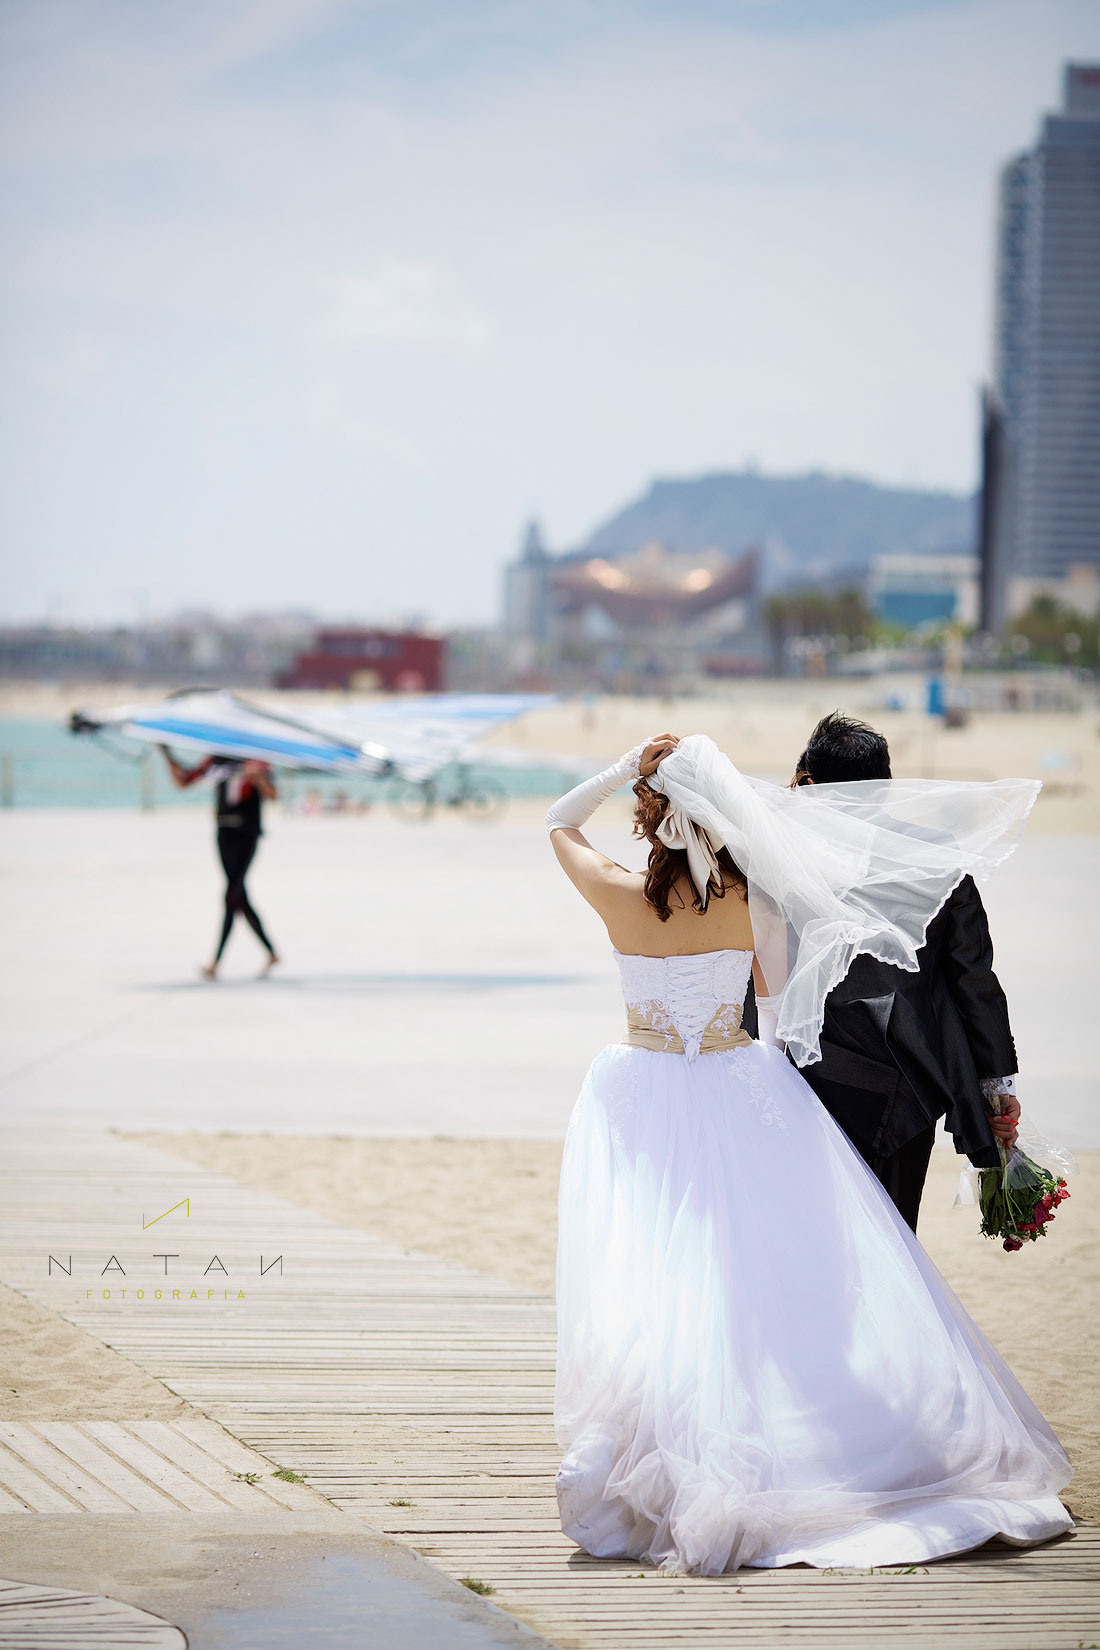 JAPANESE-WEDDING-BARCELONA-021